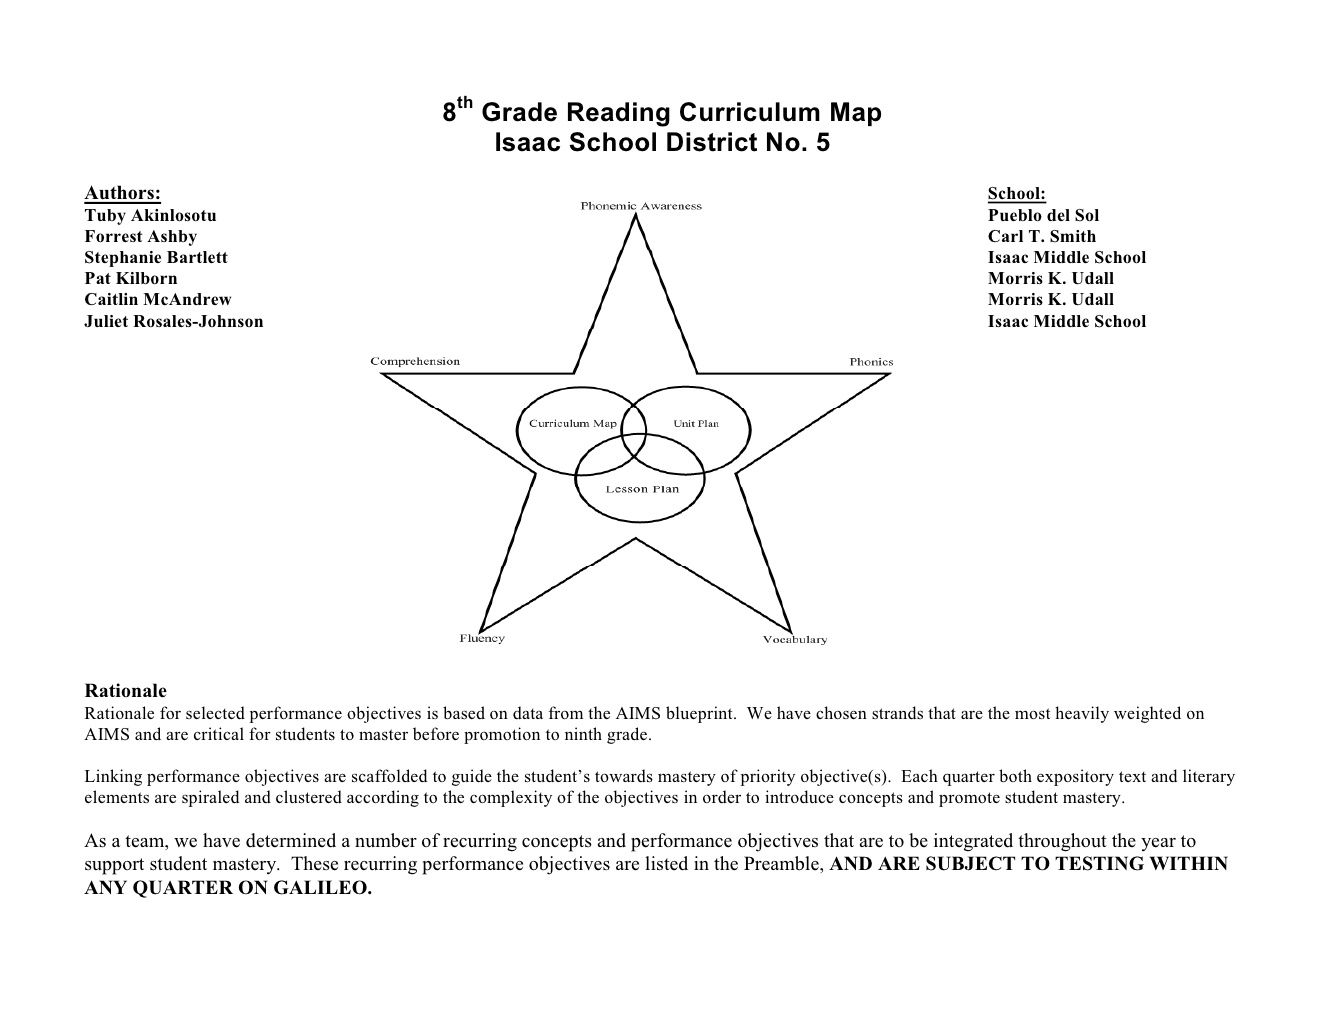 8th Grade Reading Curriculum Map Isaac School District No